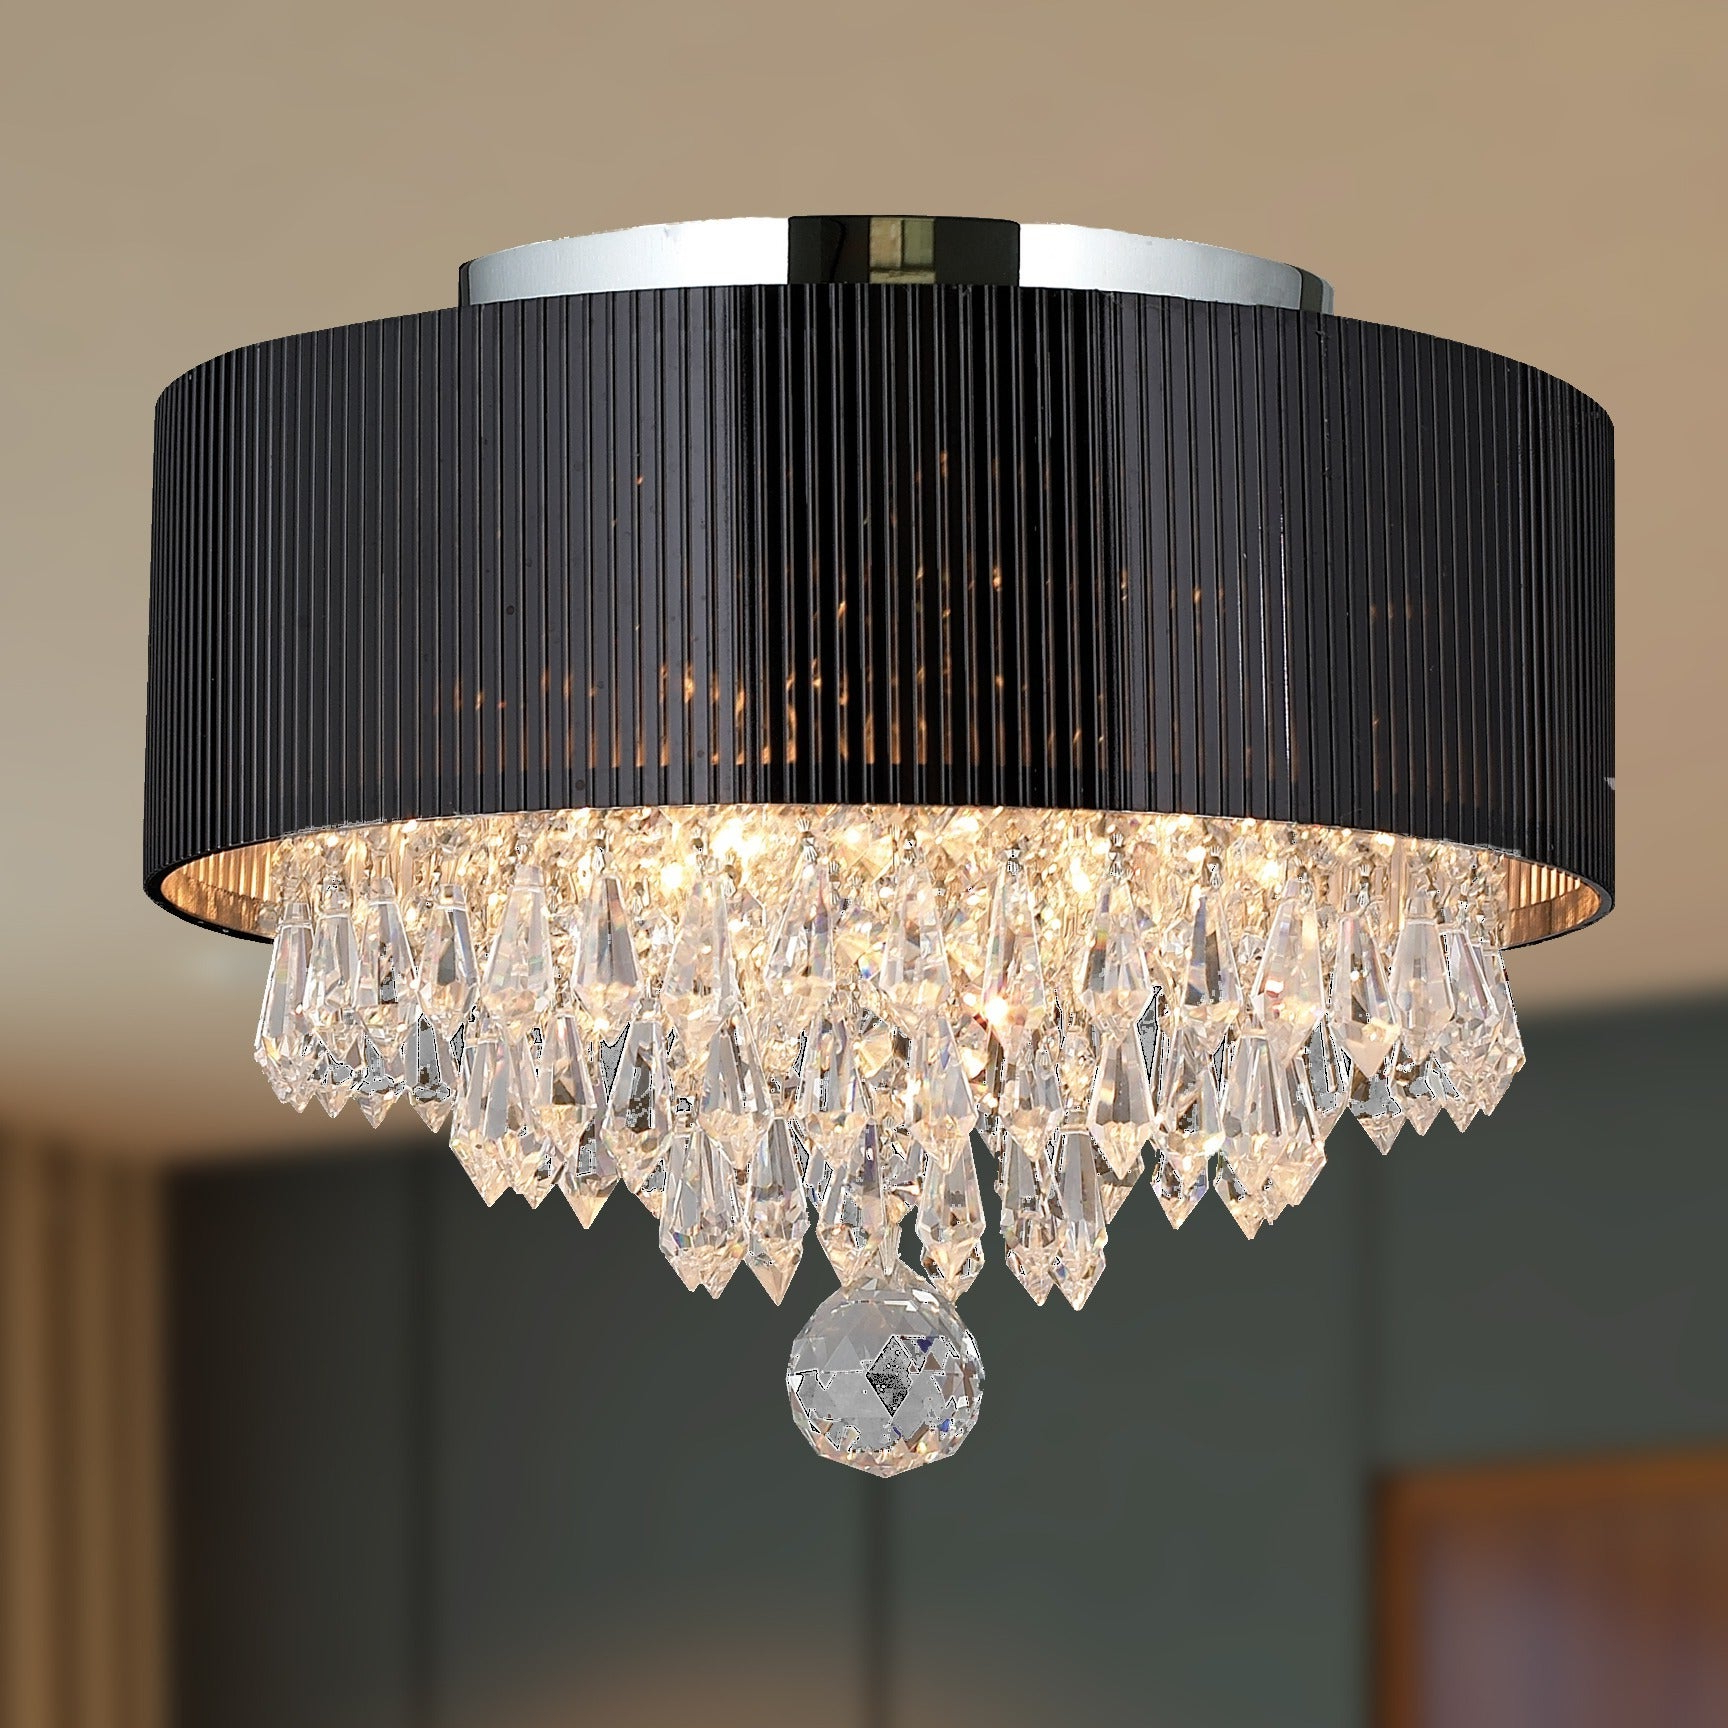 Modern Elegance 3 Light Chrome Finish And Full Lead Crystal With Black Drum  Shade Small Flush Mount Ceiling Light Within Widely Used Clea 3 Light Crystal Chandeliers (View 7 of 20)